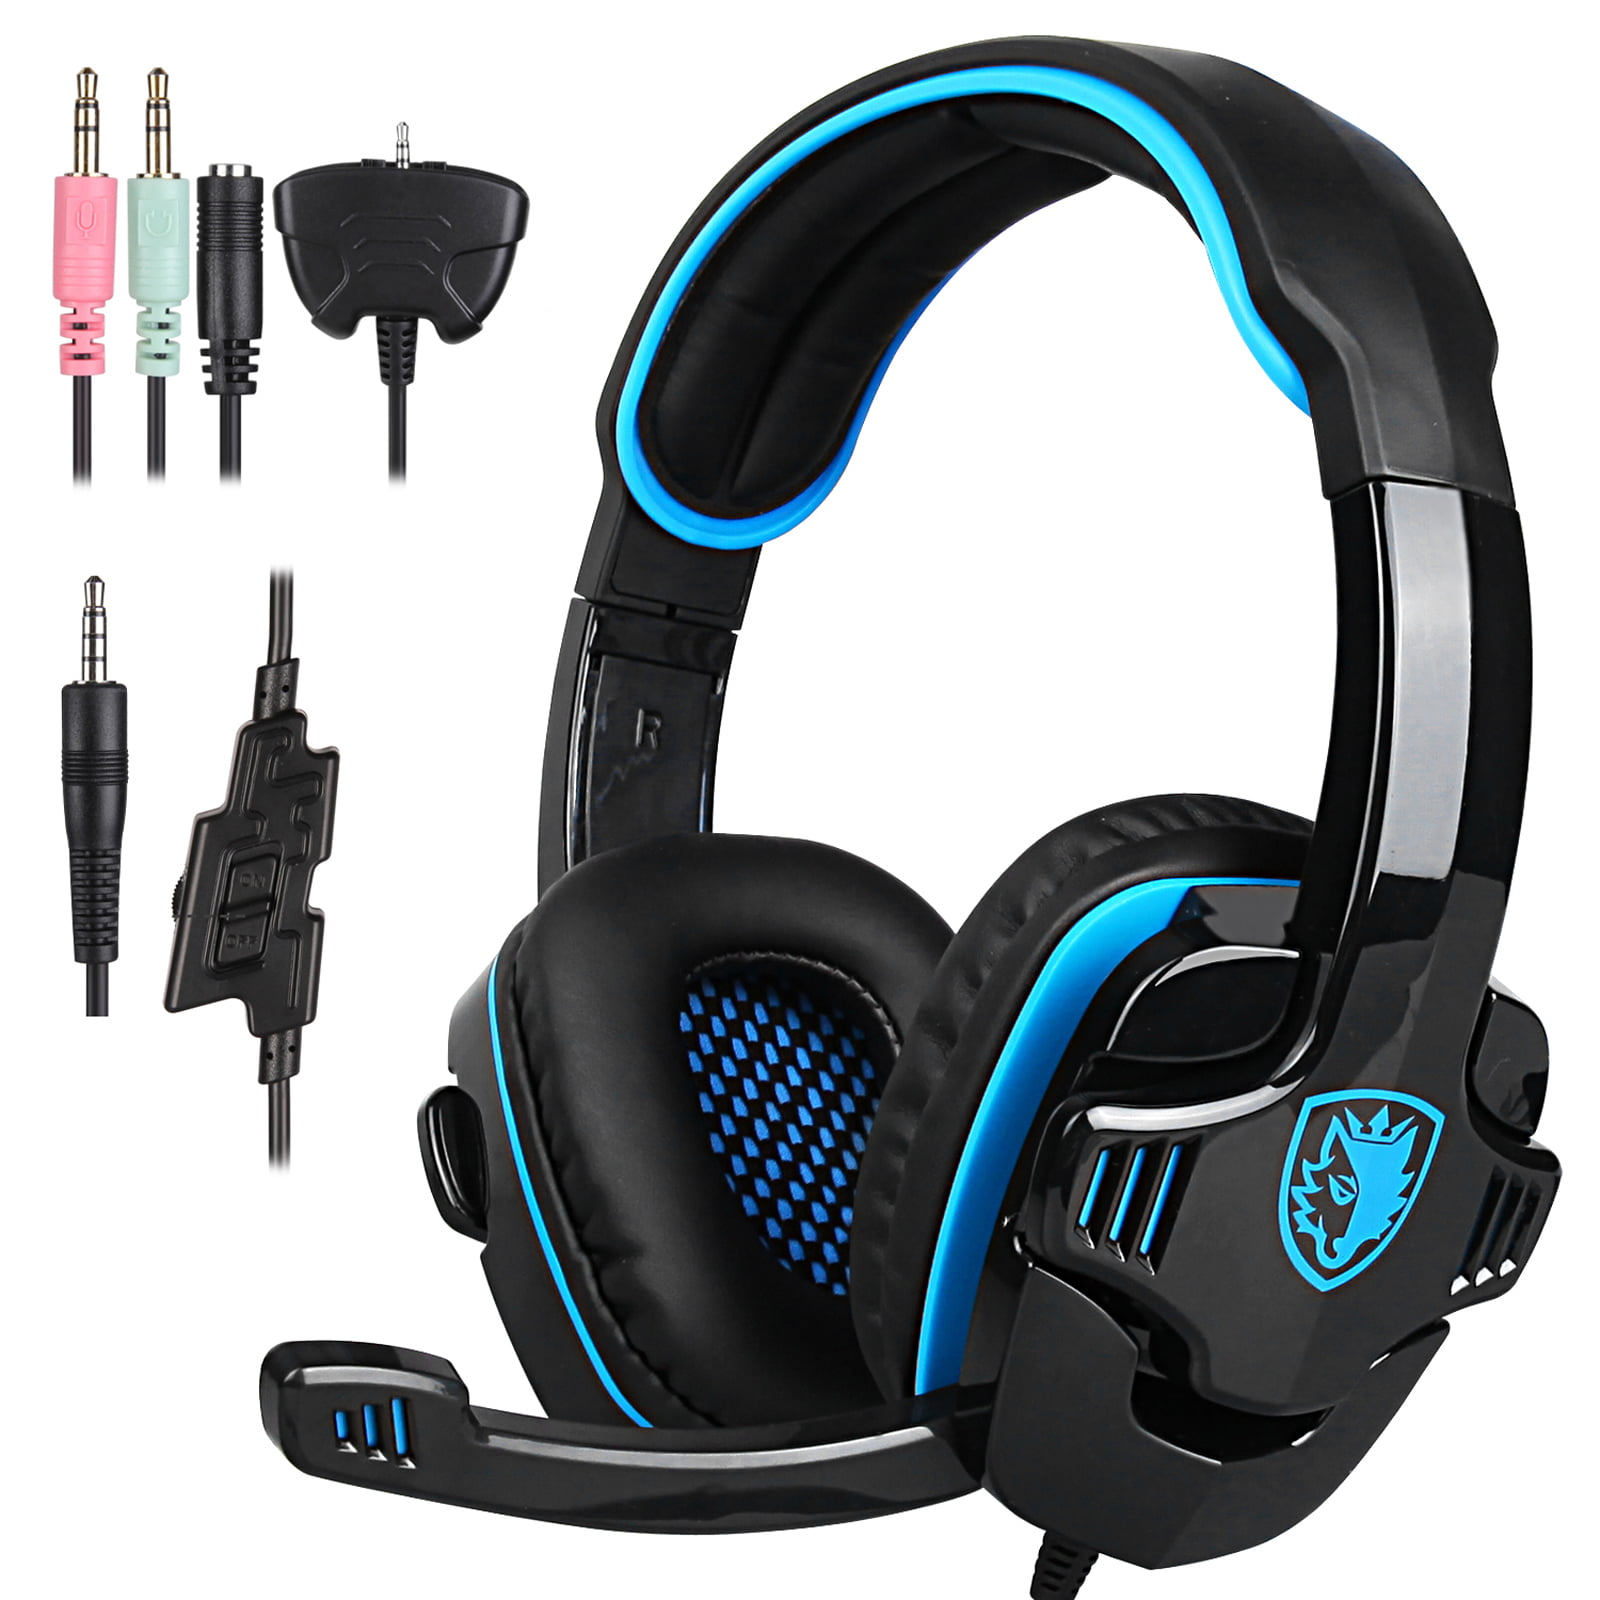 Best gaming headset 2019 for pc, ps4, ps3, xbox one & xbox 360.